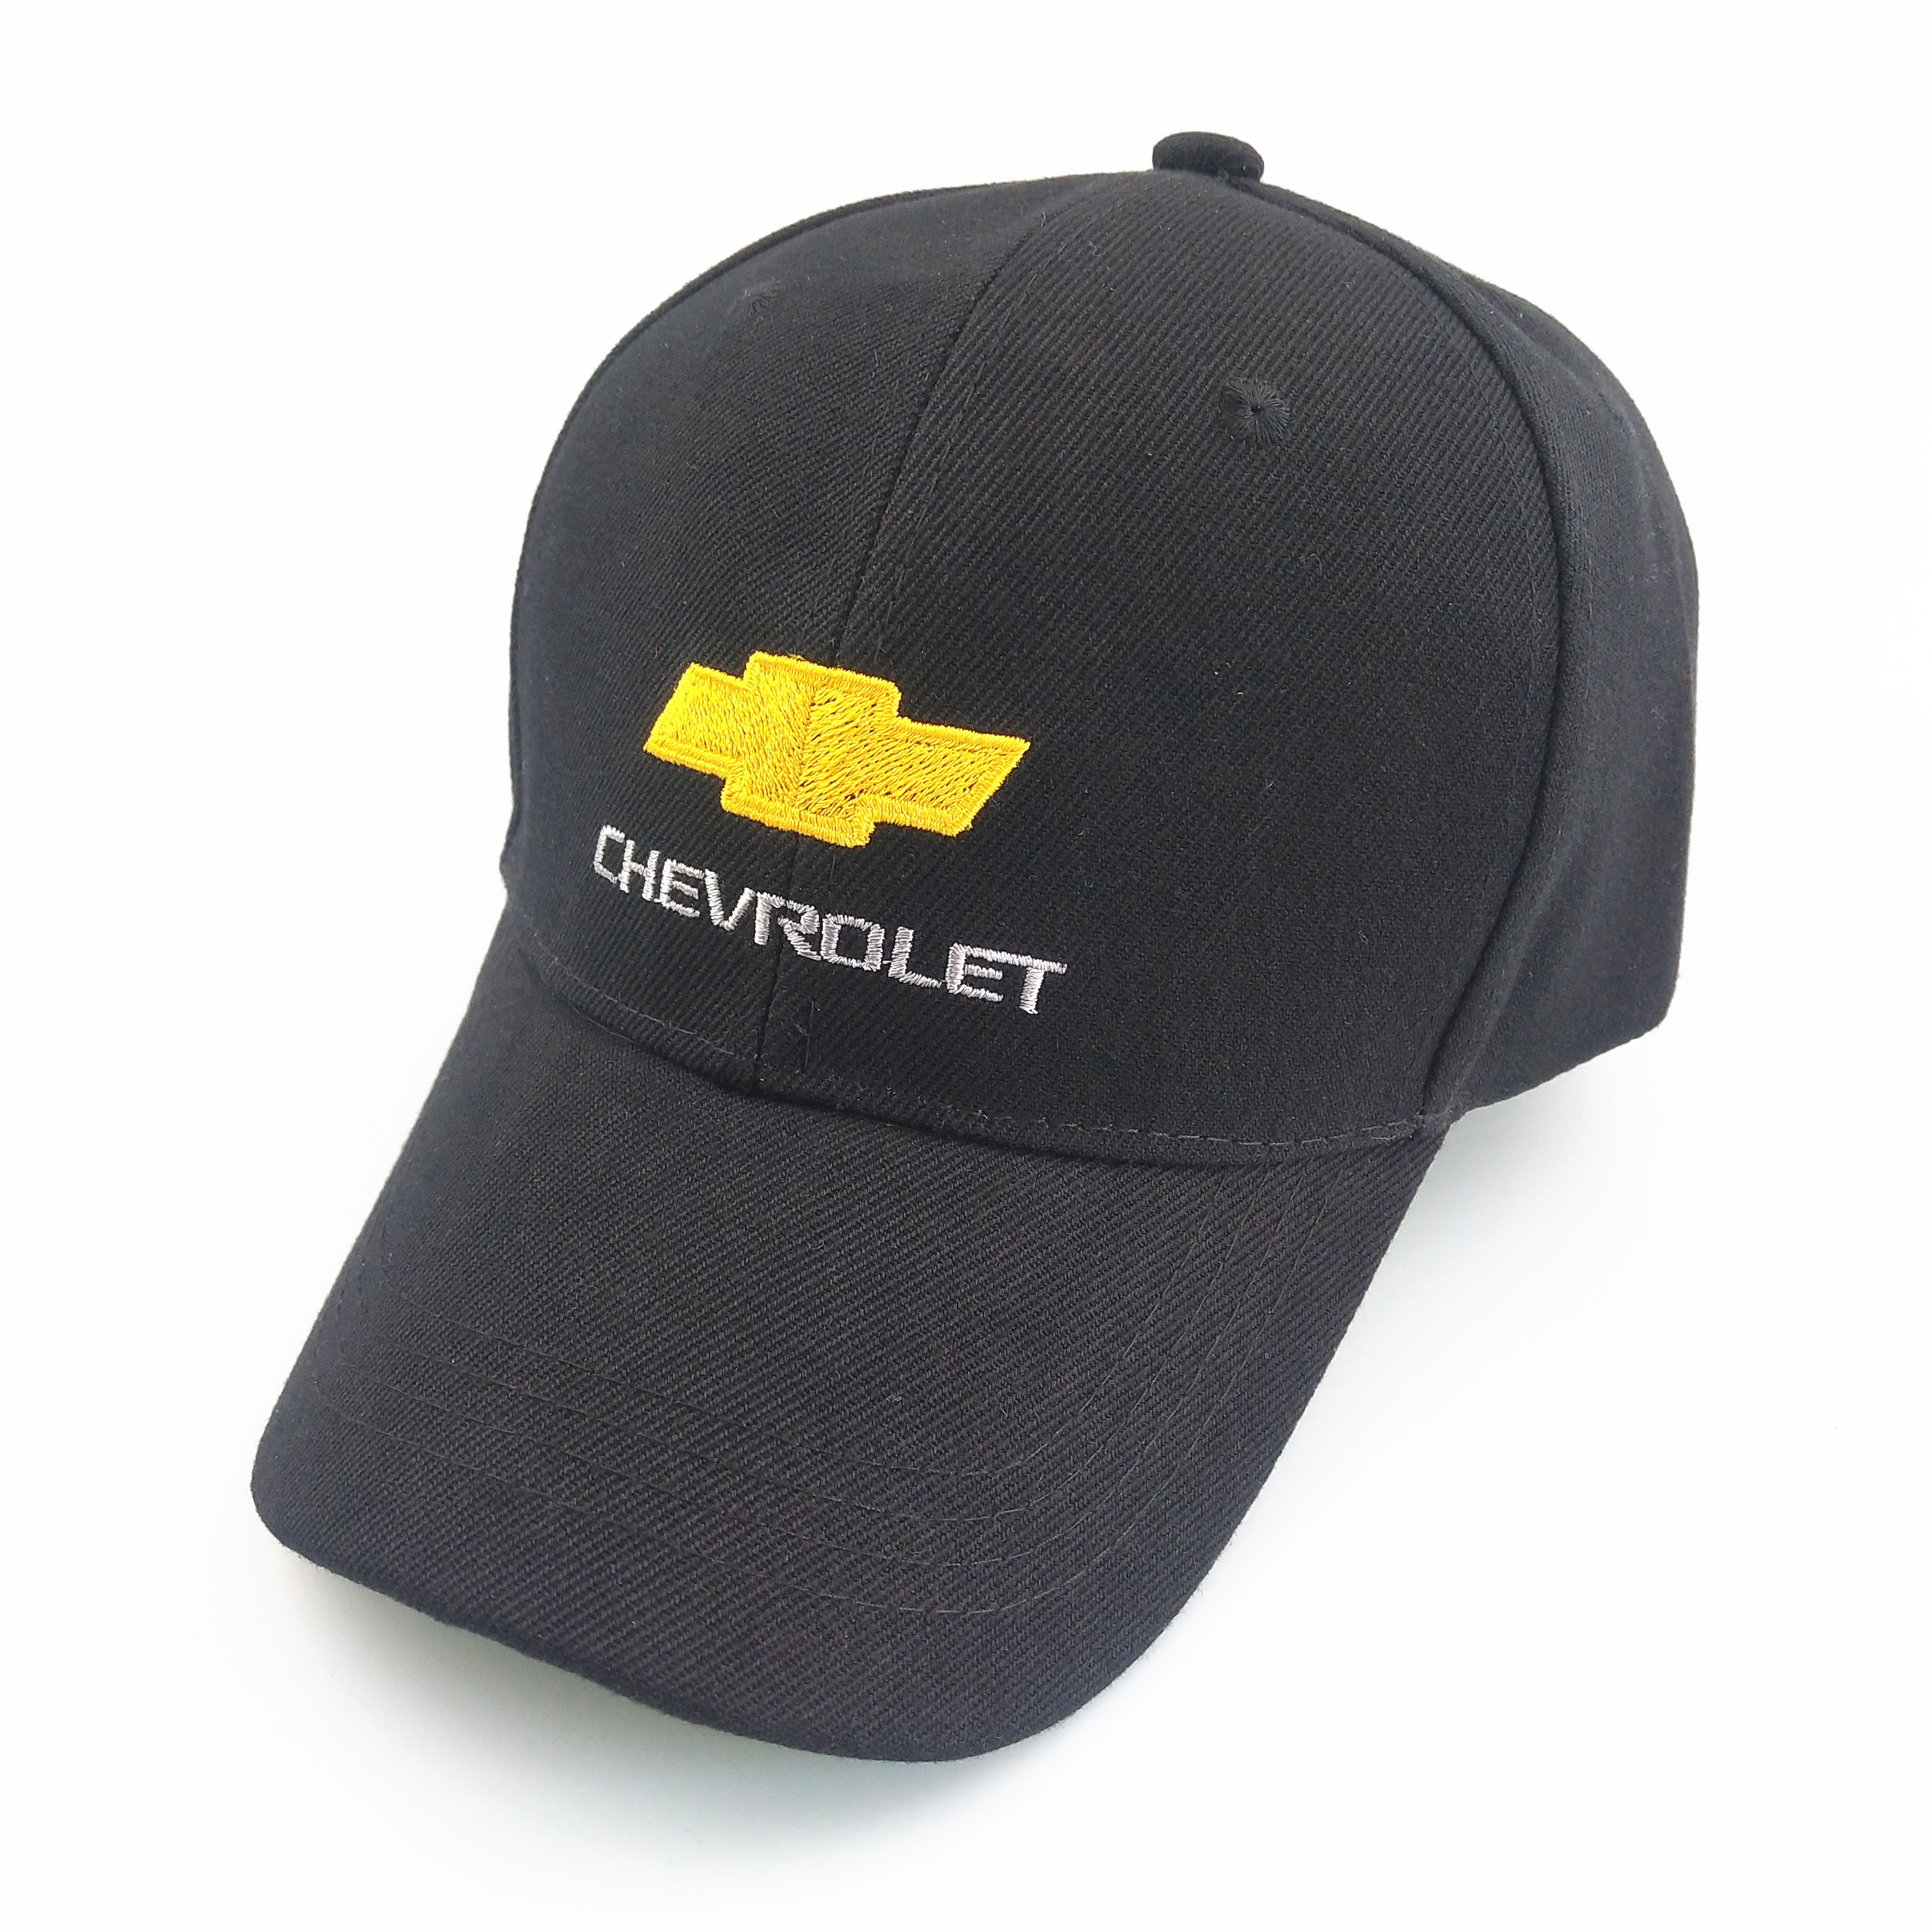 2019 Motorsports Outdoor Baseball Caps Hats Car Caps For Chevrolet Cruze Aveo Lacetti Captiva Niva Spark Orlando Epica Sail So